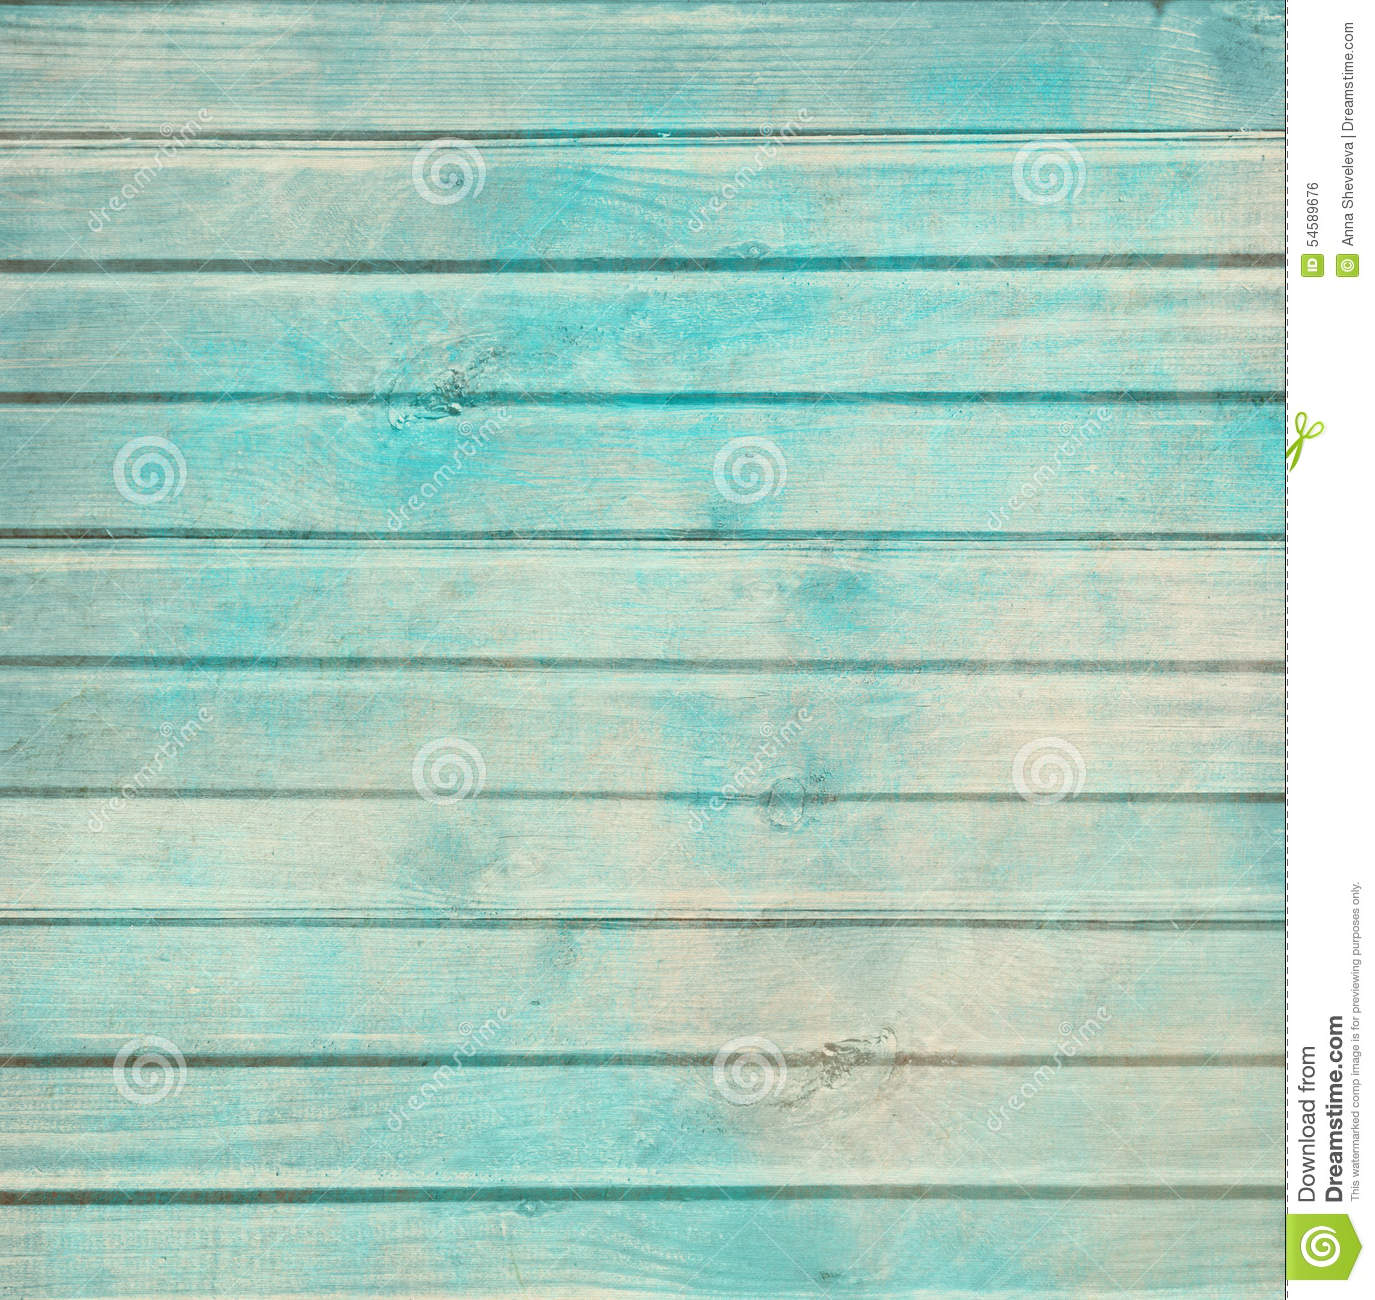 Rustic Old Plank Background In Turquoise Mint And Beige Colors With Textured Scratches Antique Cracked Paint For Scrapbooking Decoupage